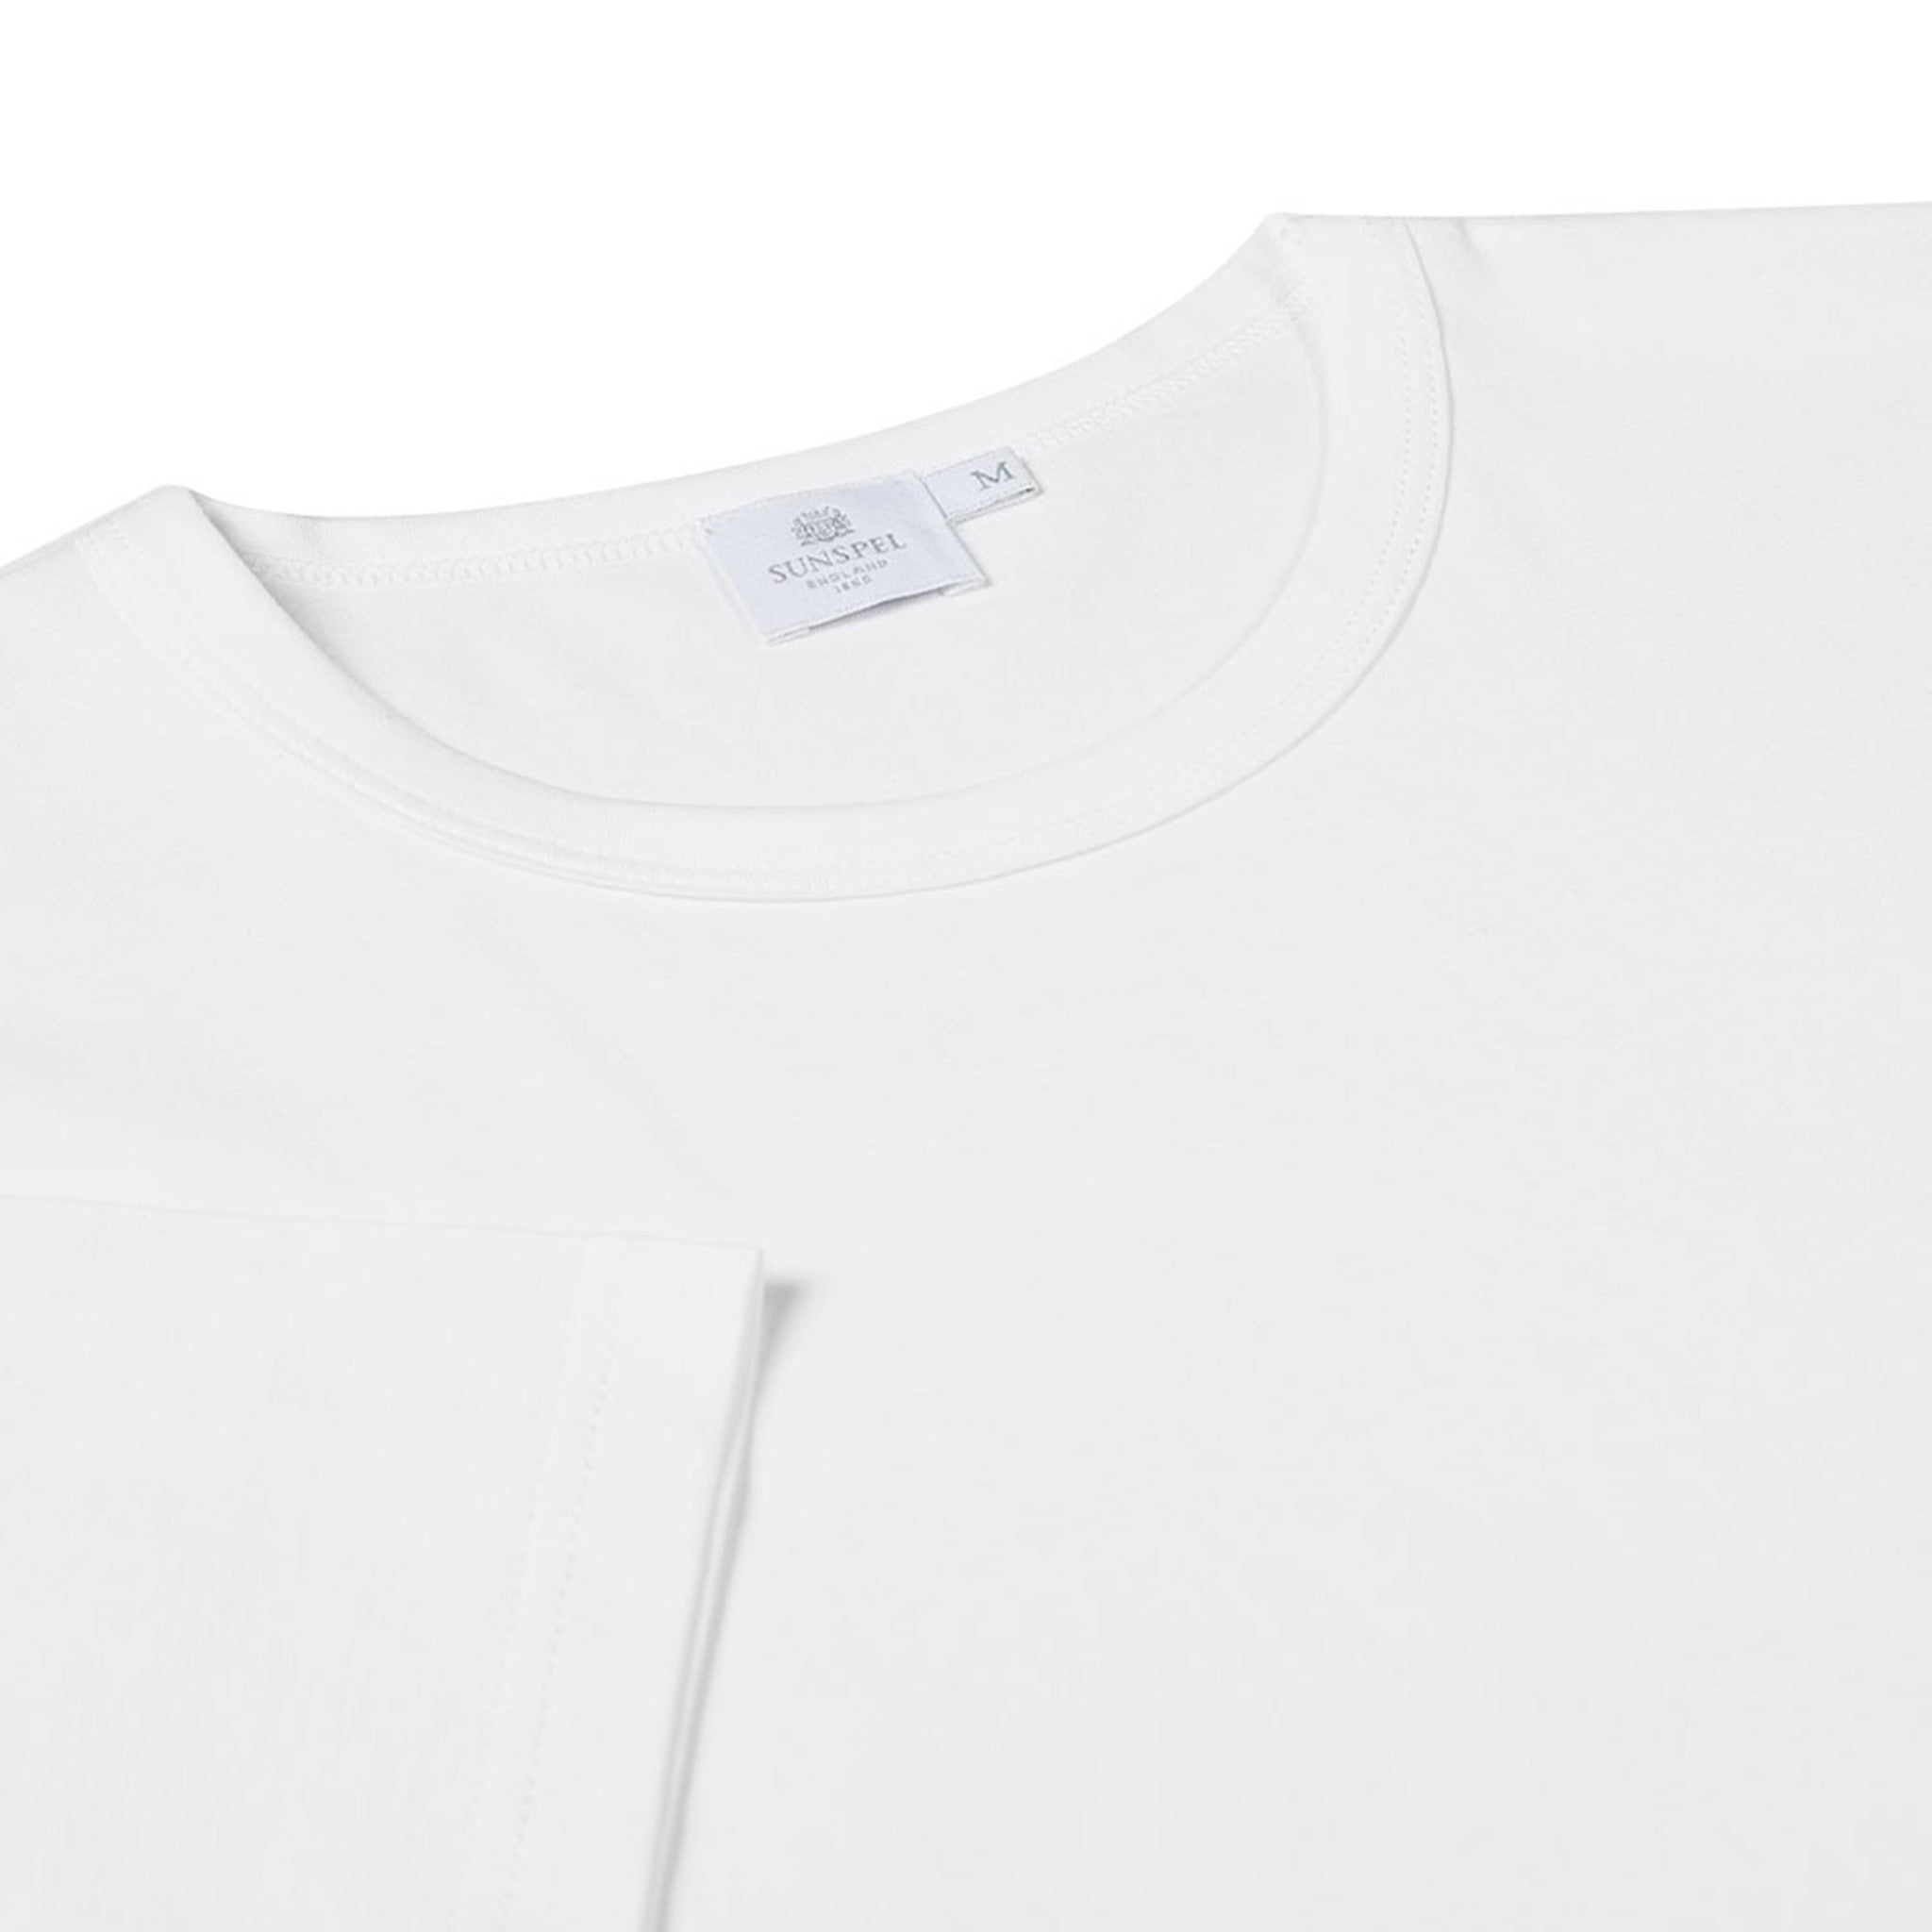 Sunspel T-Shirt weiss